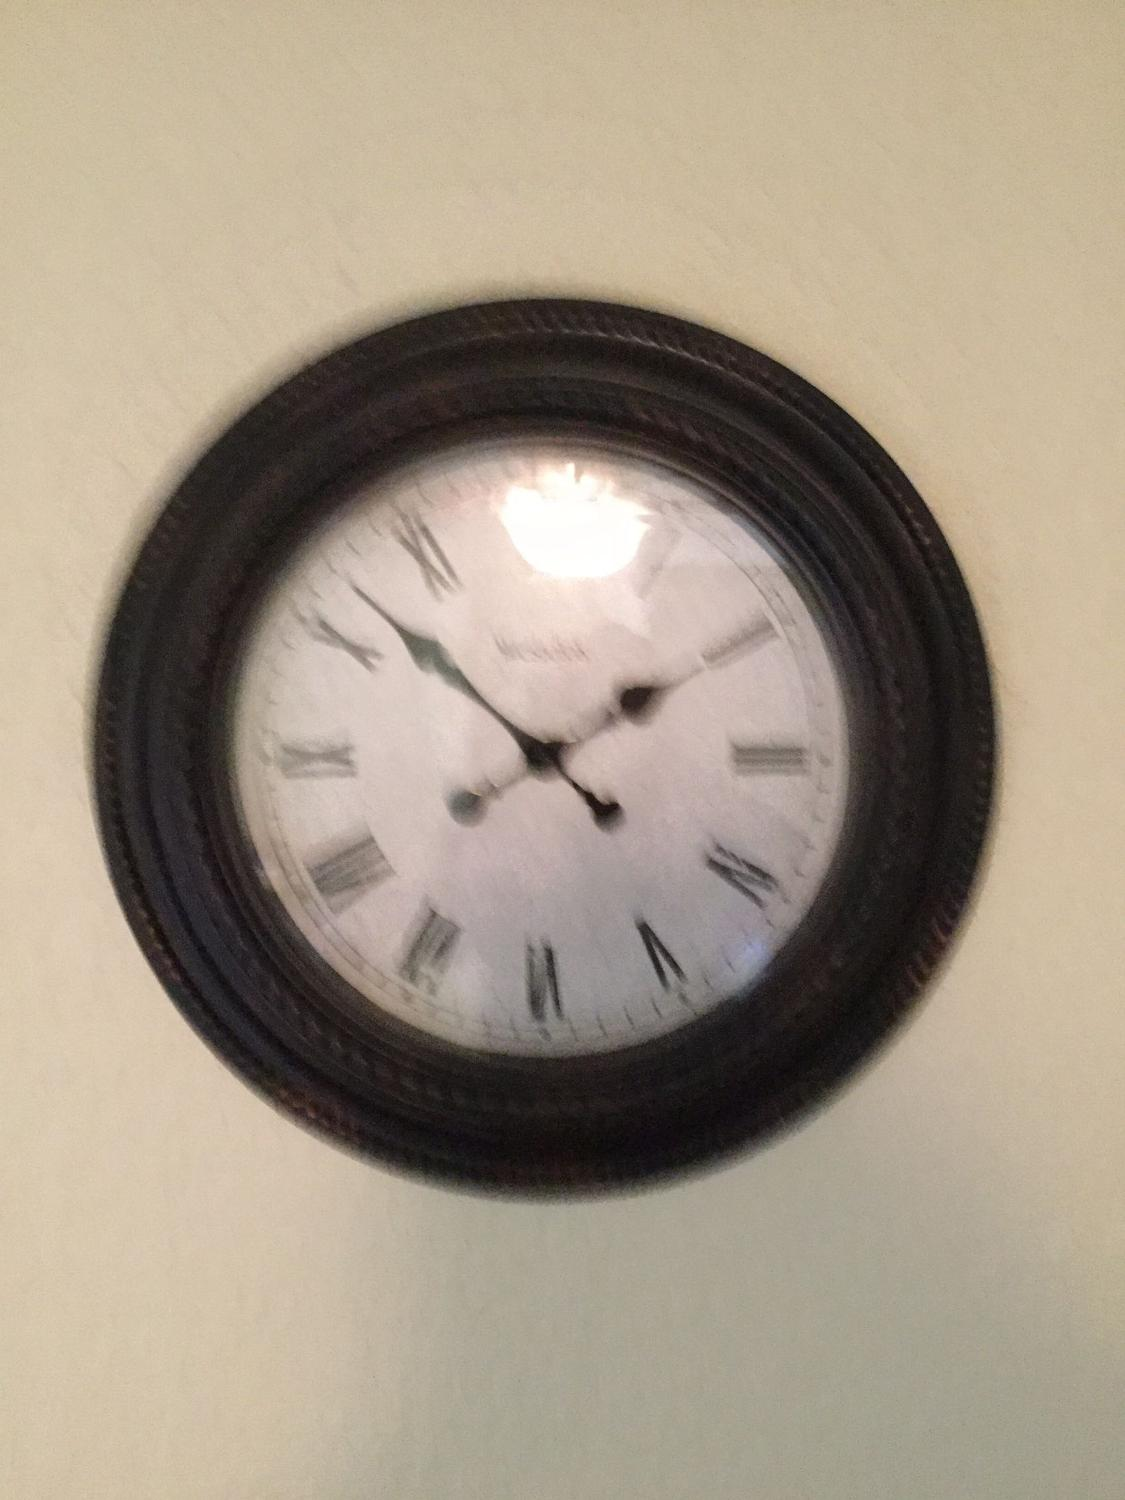 best wall clock for sale in west palm beach florida for 2017